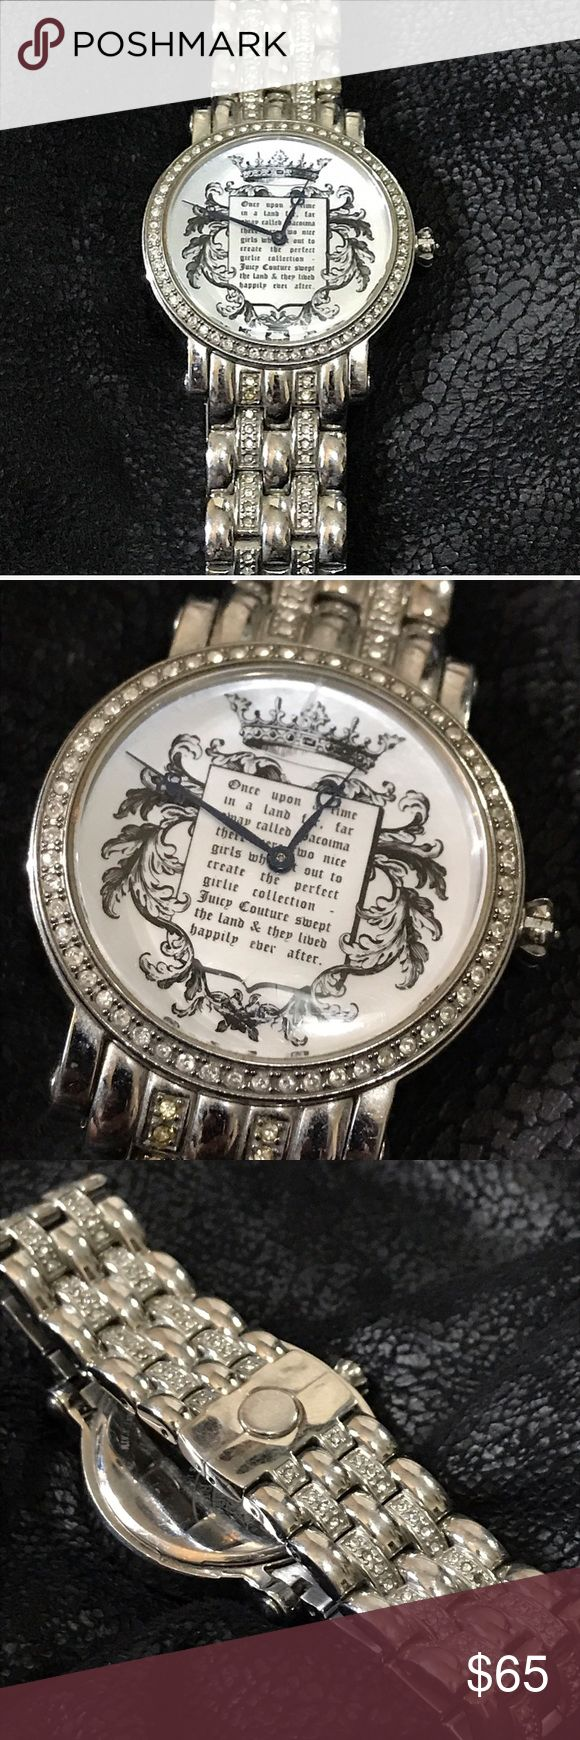 """Juicy Couture """"Once Upon a Time"""" Watch Stainless steel Juicy Couture Watch. Light scratches. Beautiful piece! There is one crystal missing on link, which is barely noticeable. All crystals around face intact. Loved this watch and is definitely one of my favorites by Juicy! Feel free to ask questions! It does need a new battery! Juicy Couture Accessories Watches"""